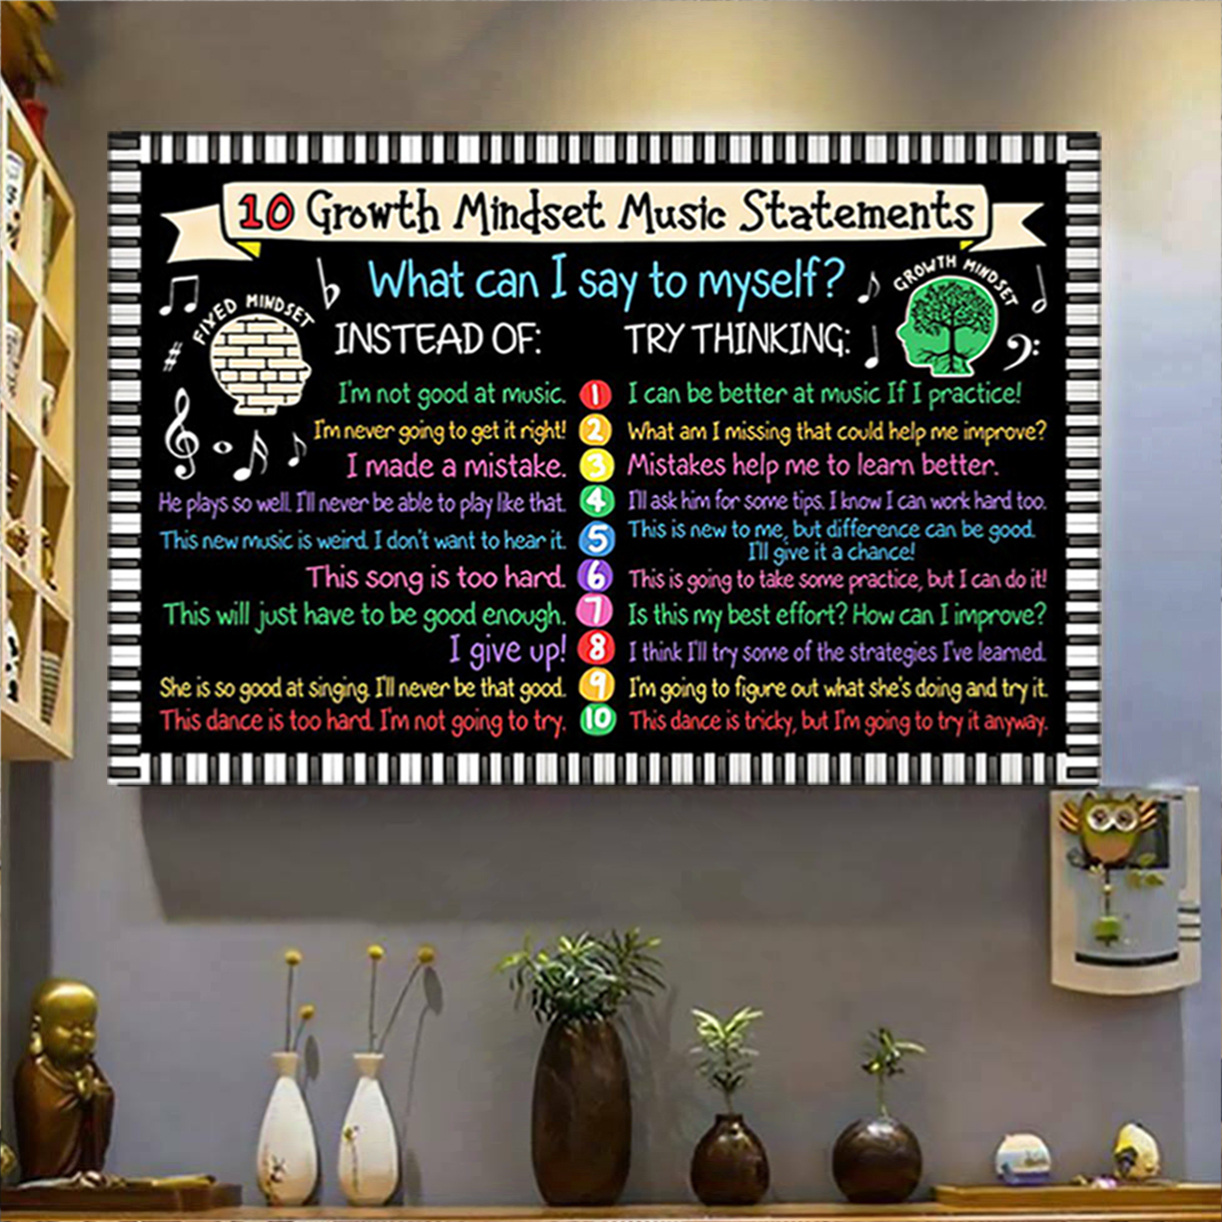 10 growth mindset music statements poster A1